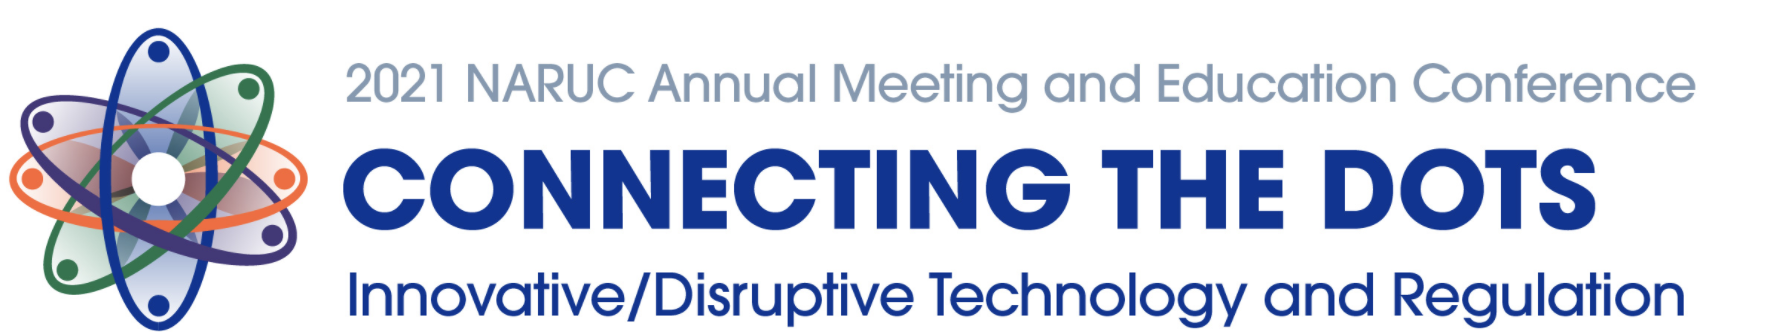 2021 NARUC Annual Meeting and Education Conference